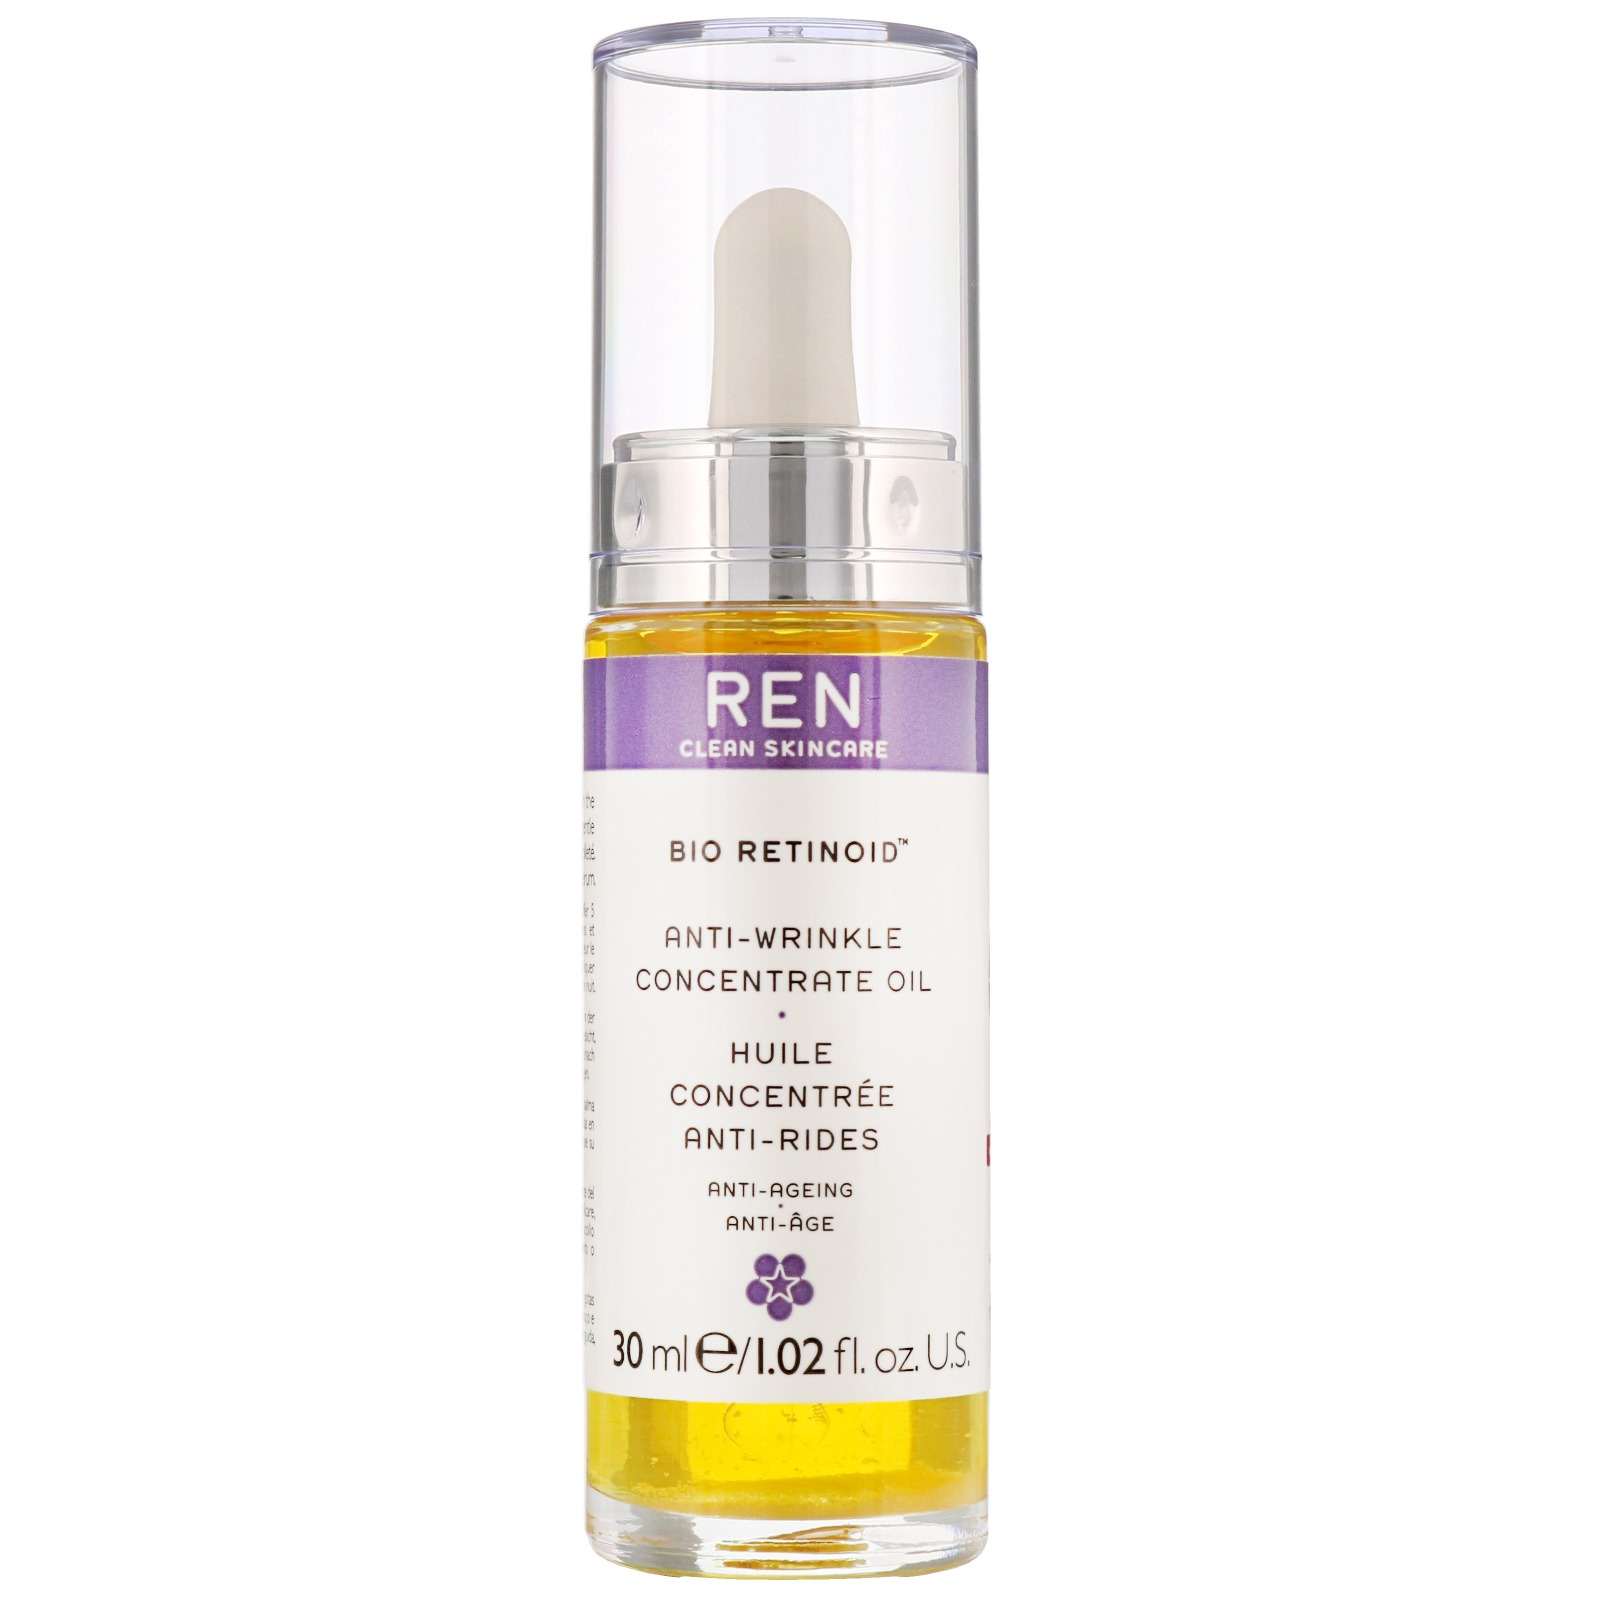 REN Clean Skincare Face Bio Retinoid Anti-Wrinkle Concentrate Oil 30ml / 1.02 fl.oz.